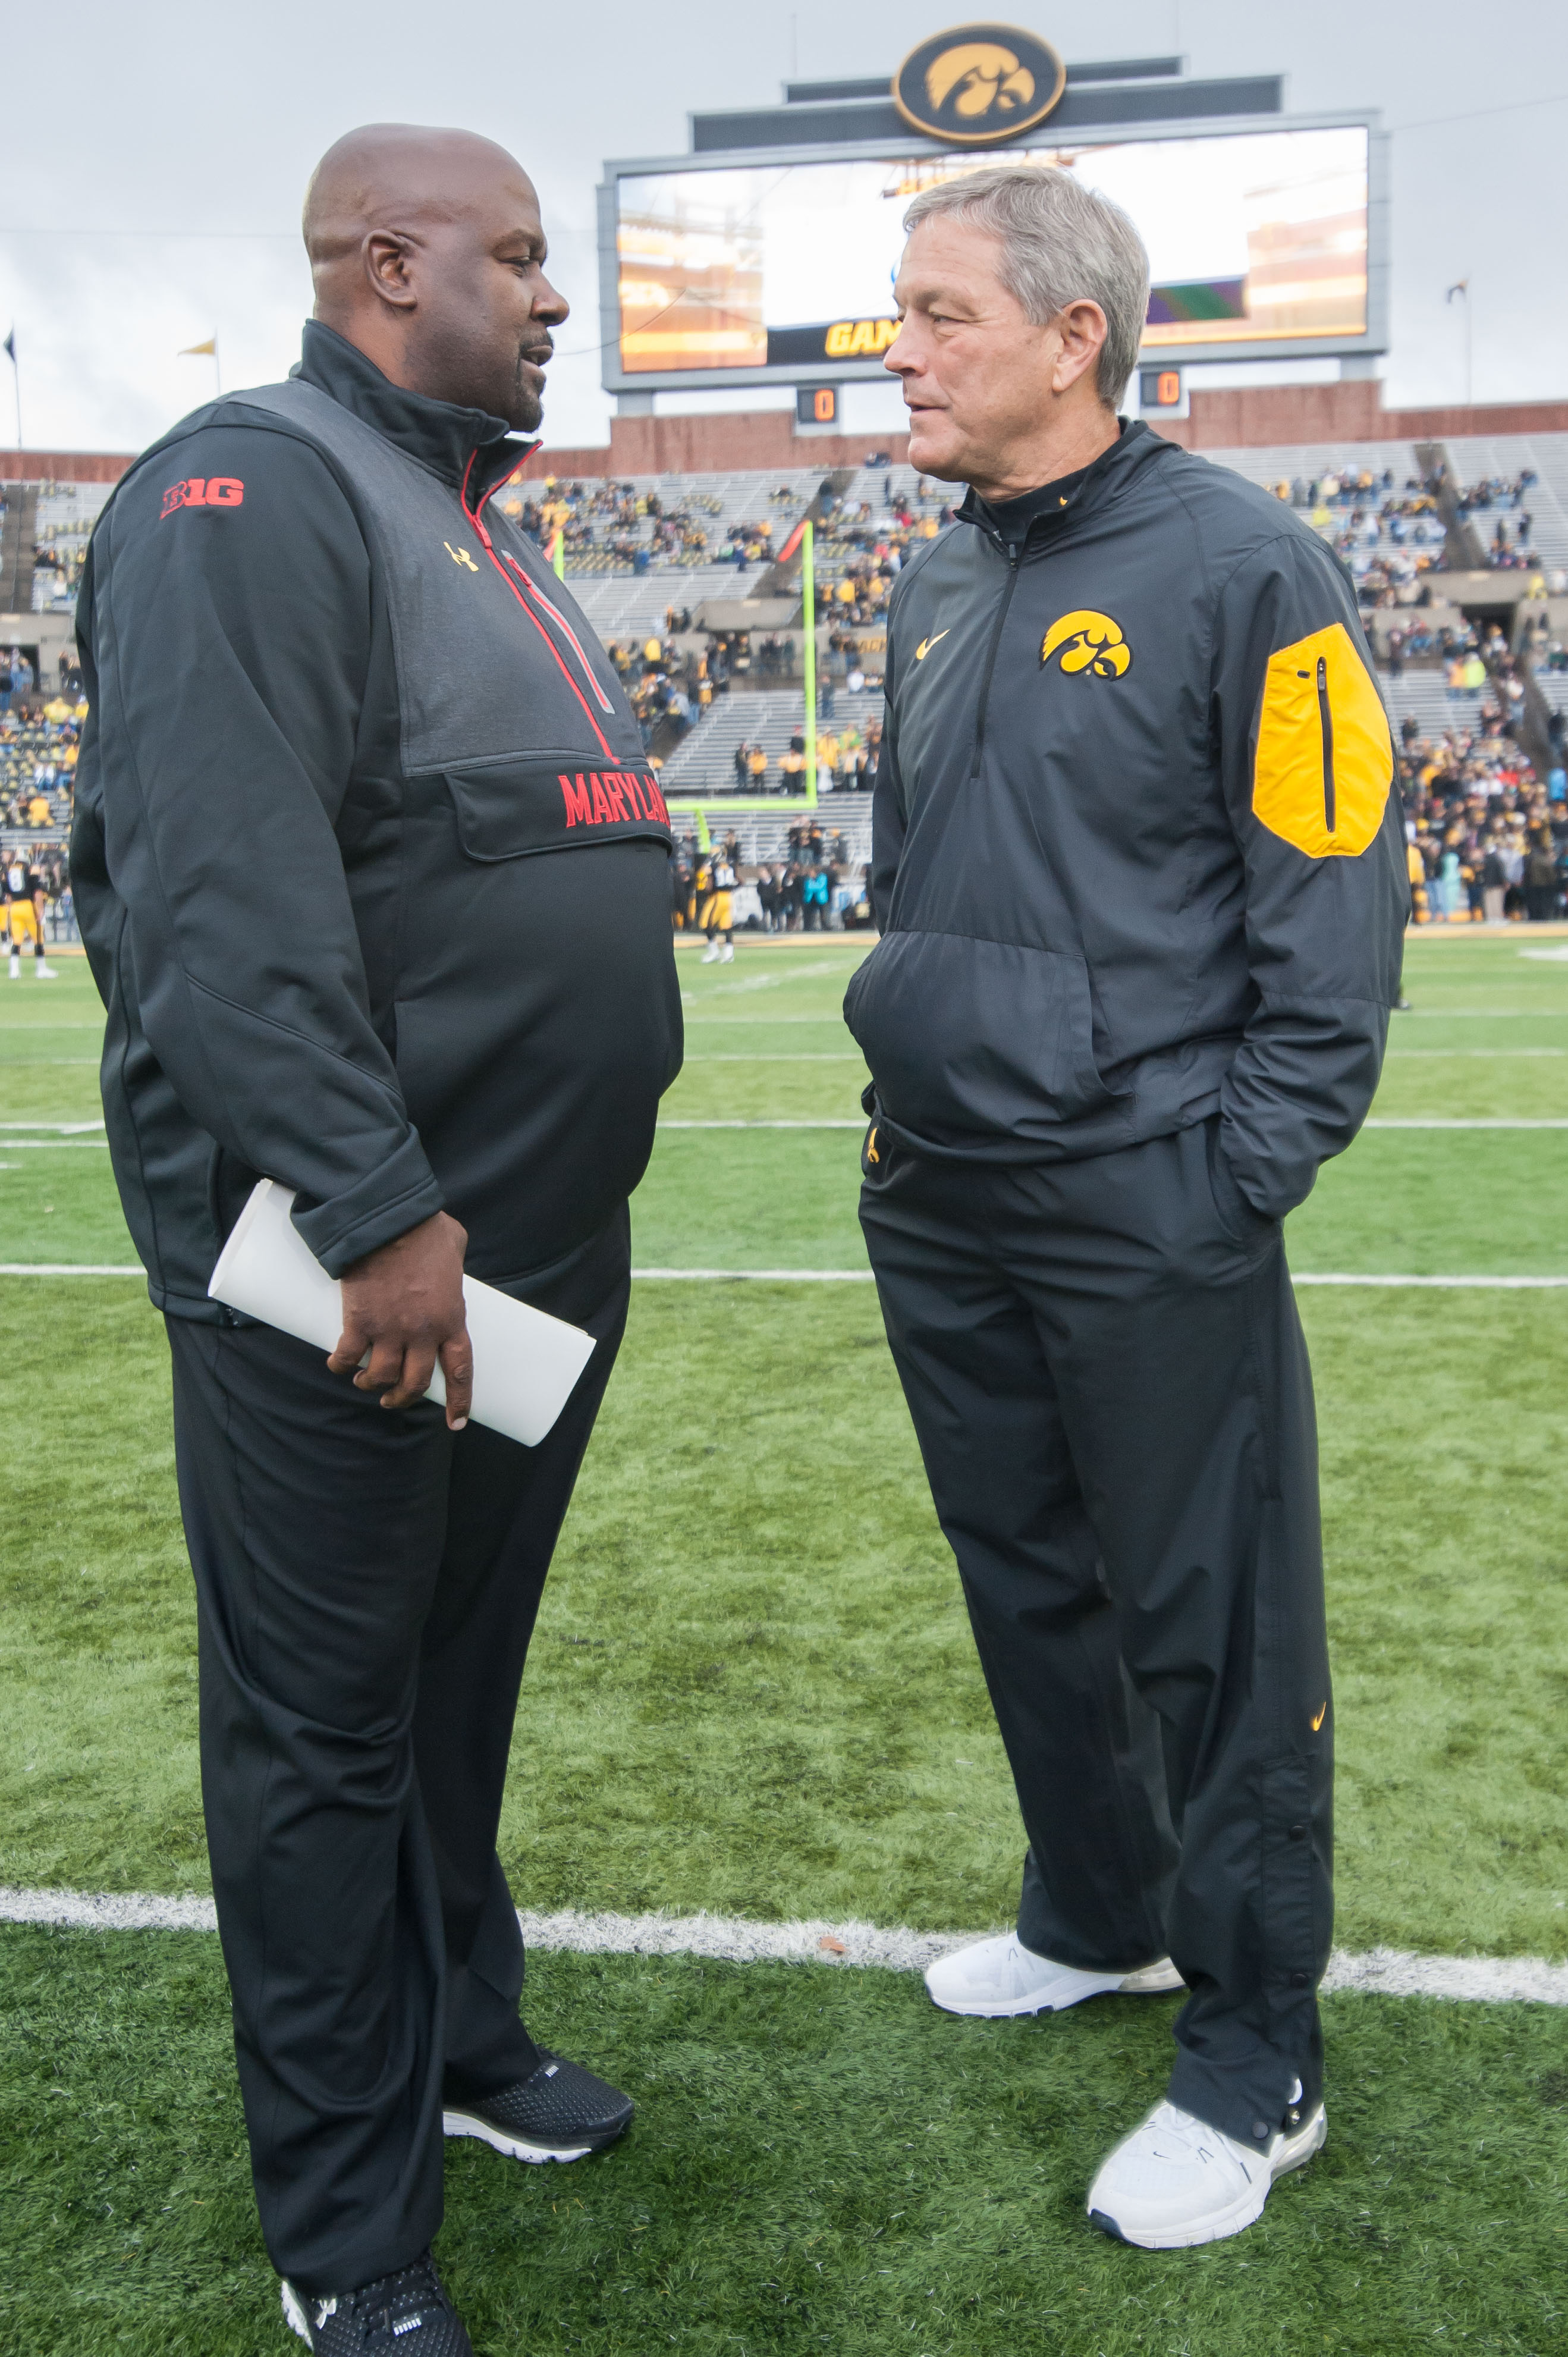 Kirk Ferentz chatting with a young'un, interim Maryland head coach Mike Locksley